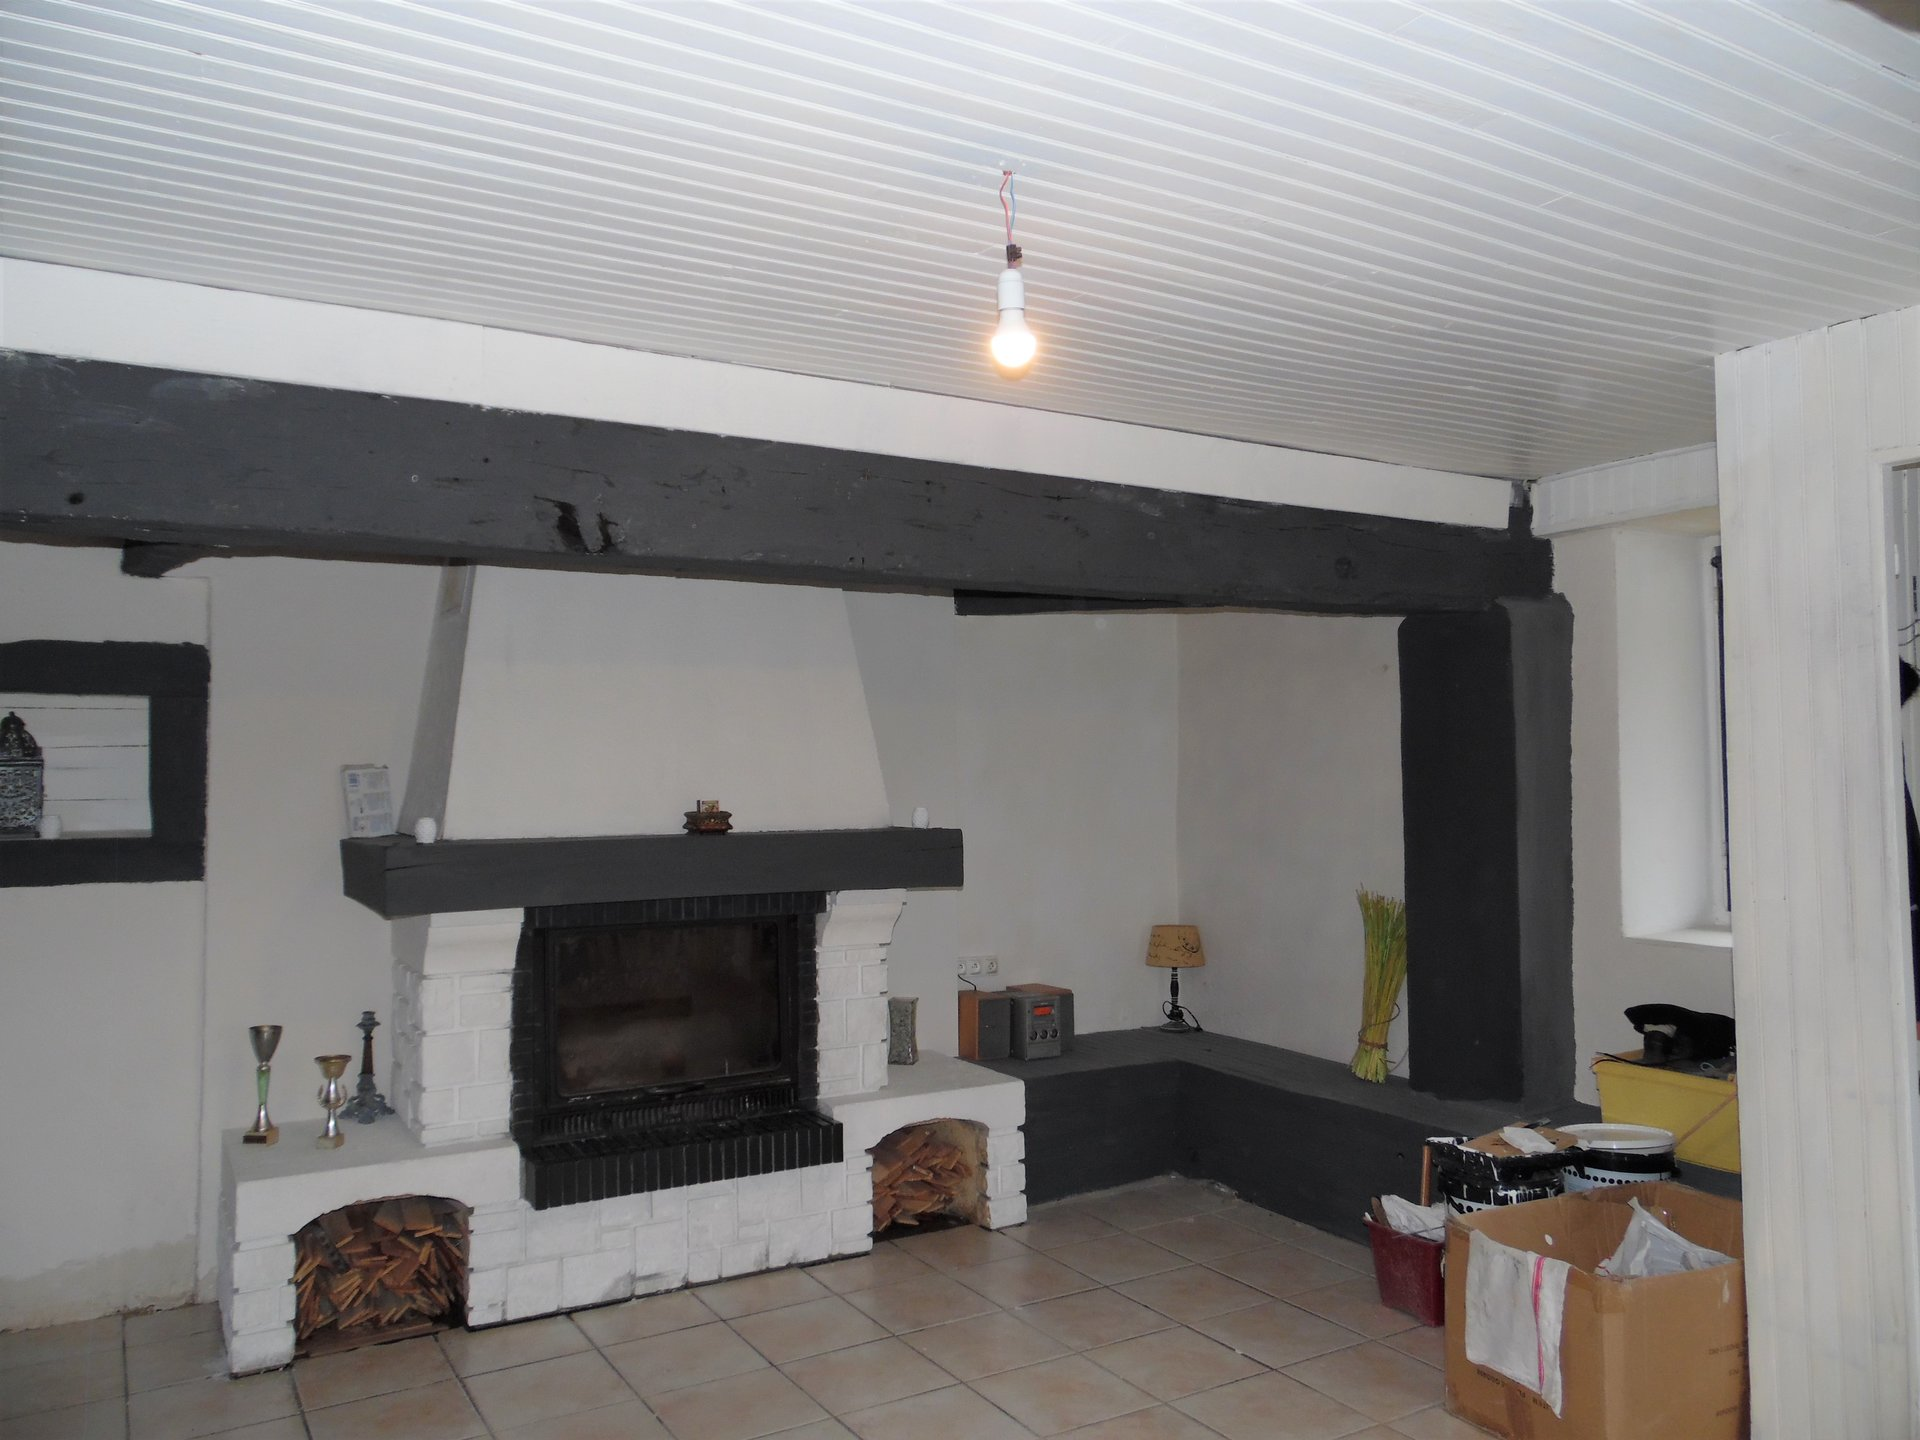 For sale in  Allier, renovated village house with terrace .